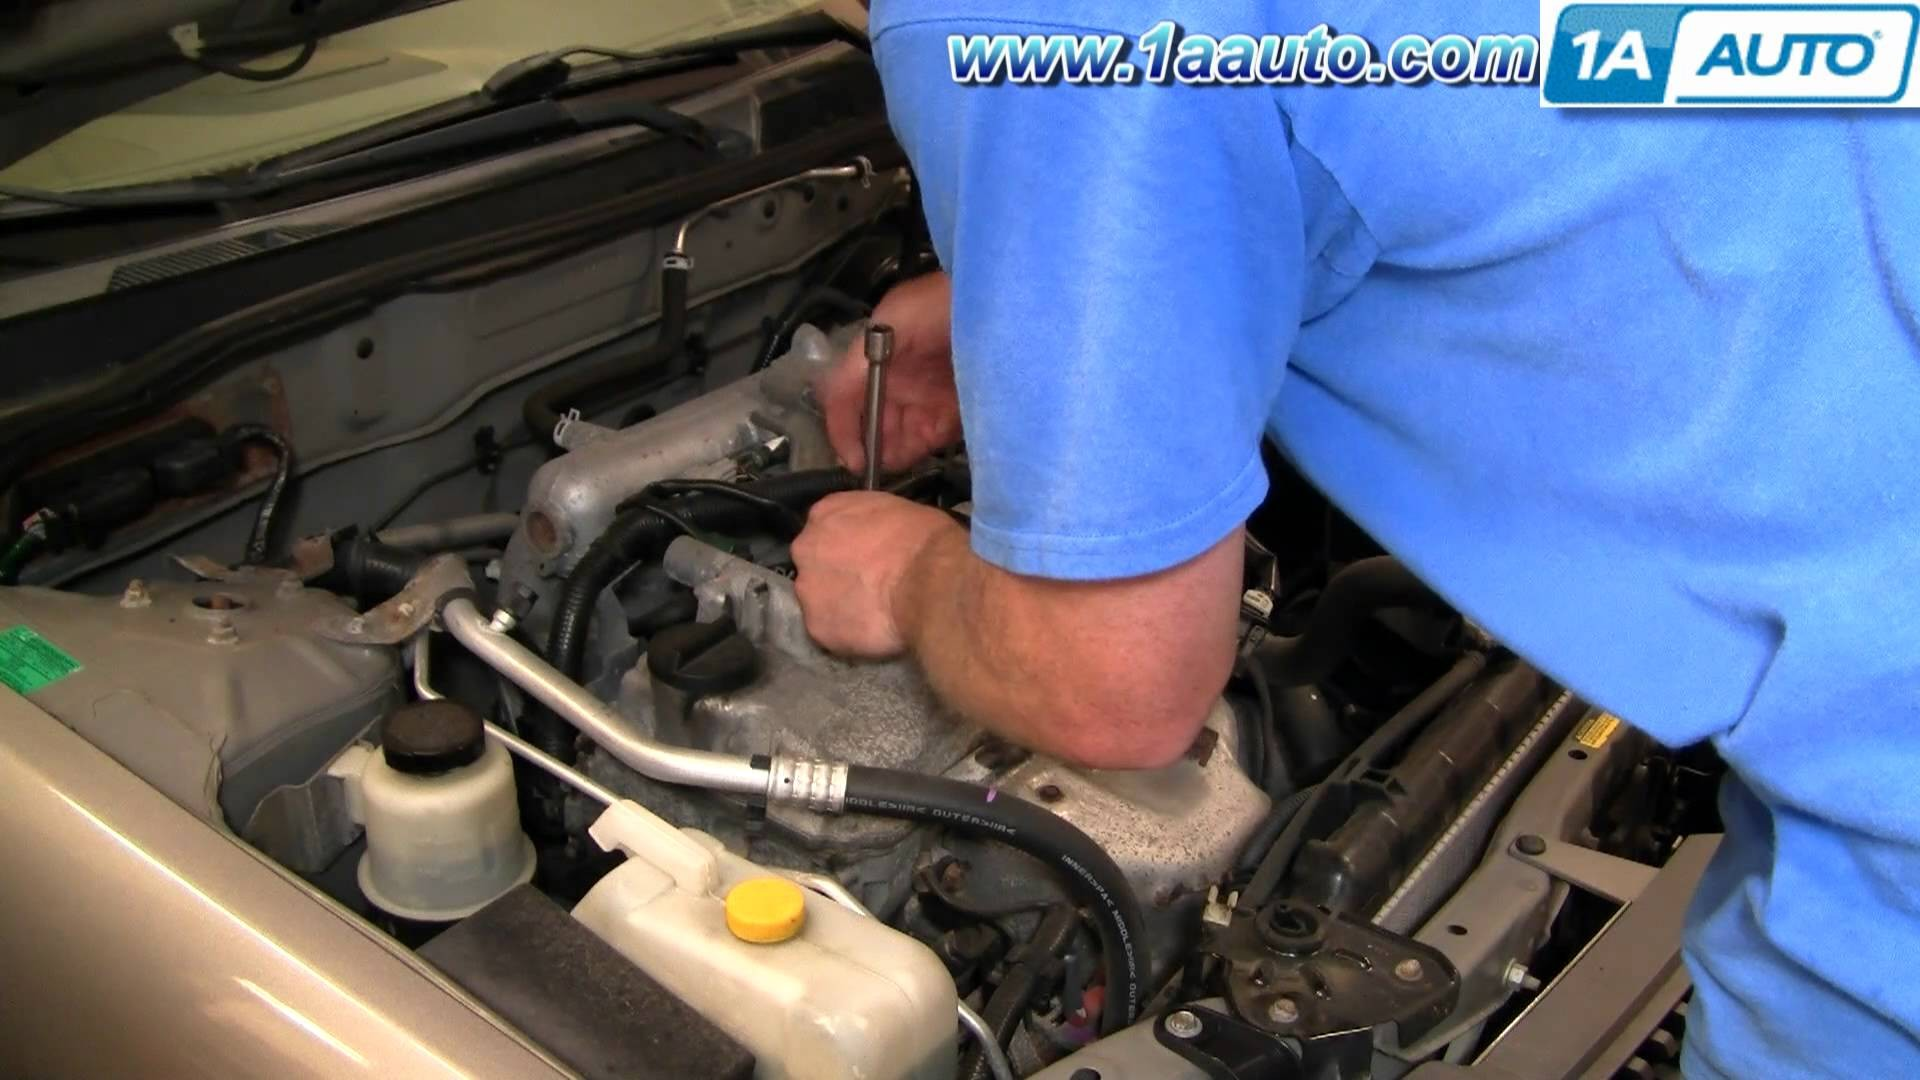 1994 Nissan Sentra Engine Diagram 1997 2007 Kia How To Install Replace Spark Plugs 04 06 1aauto